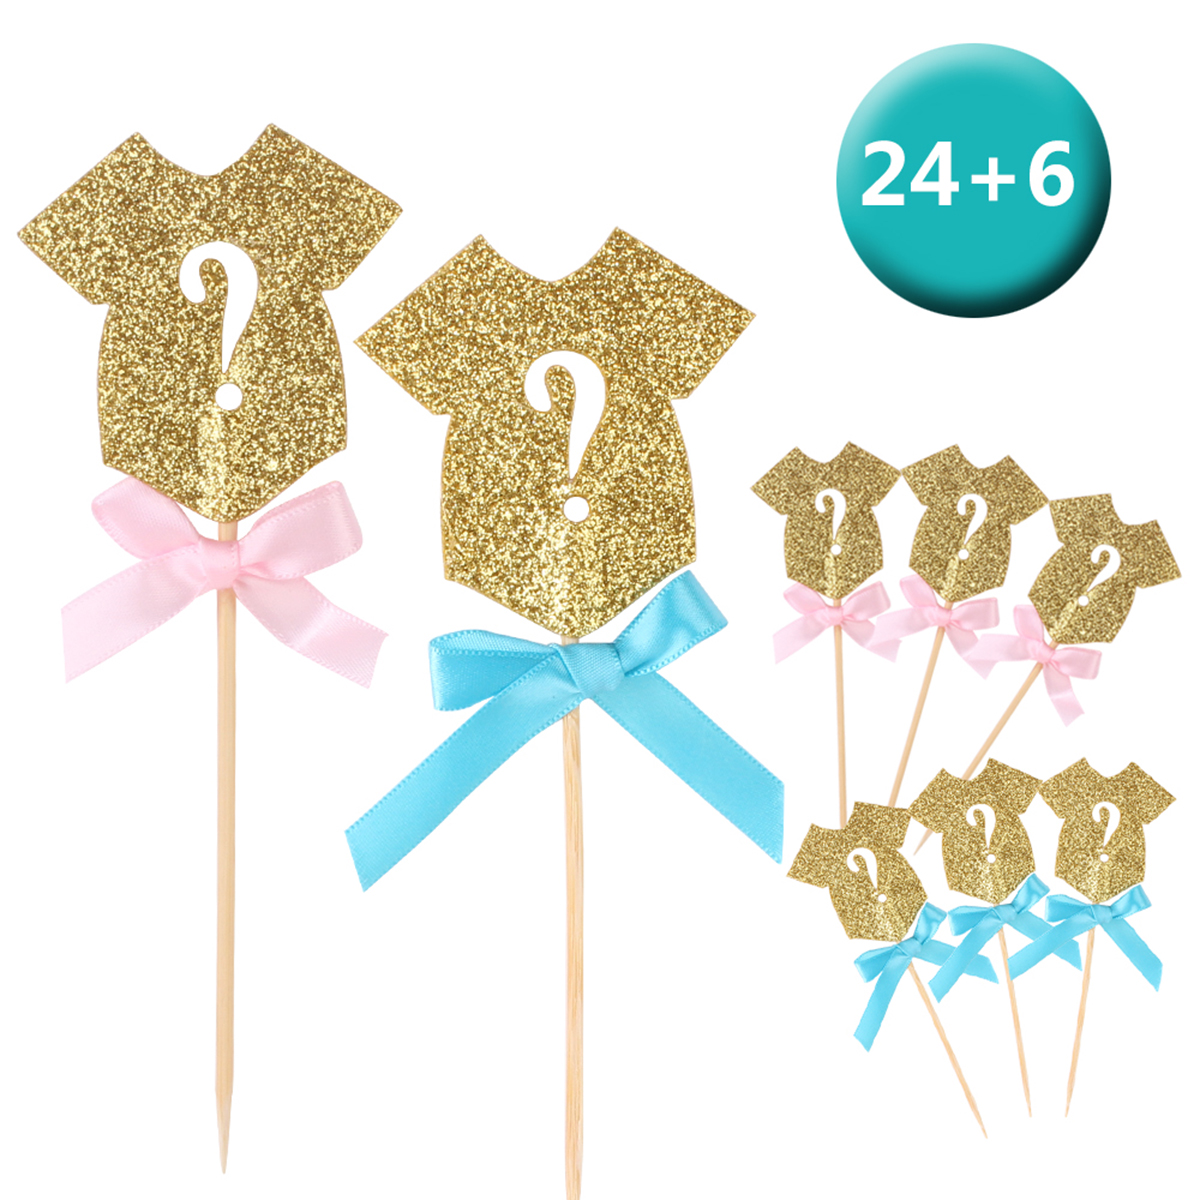 30pcs Glitter Cupcake Toppers  Cake Toppers Paper Kids Birthday Party Dessert Table Decorating Supply Universe Baby Shower Boy